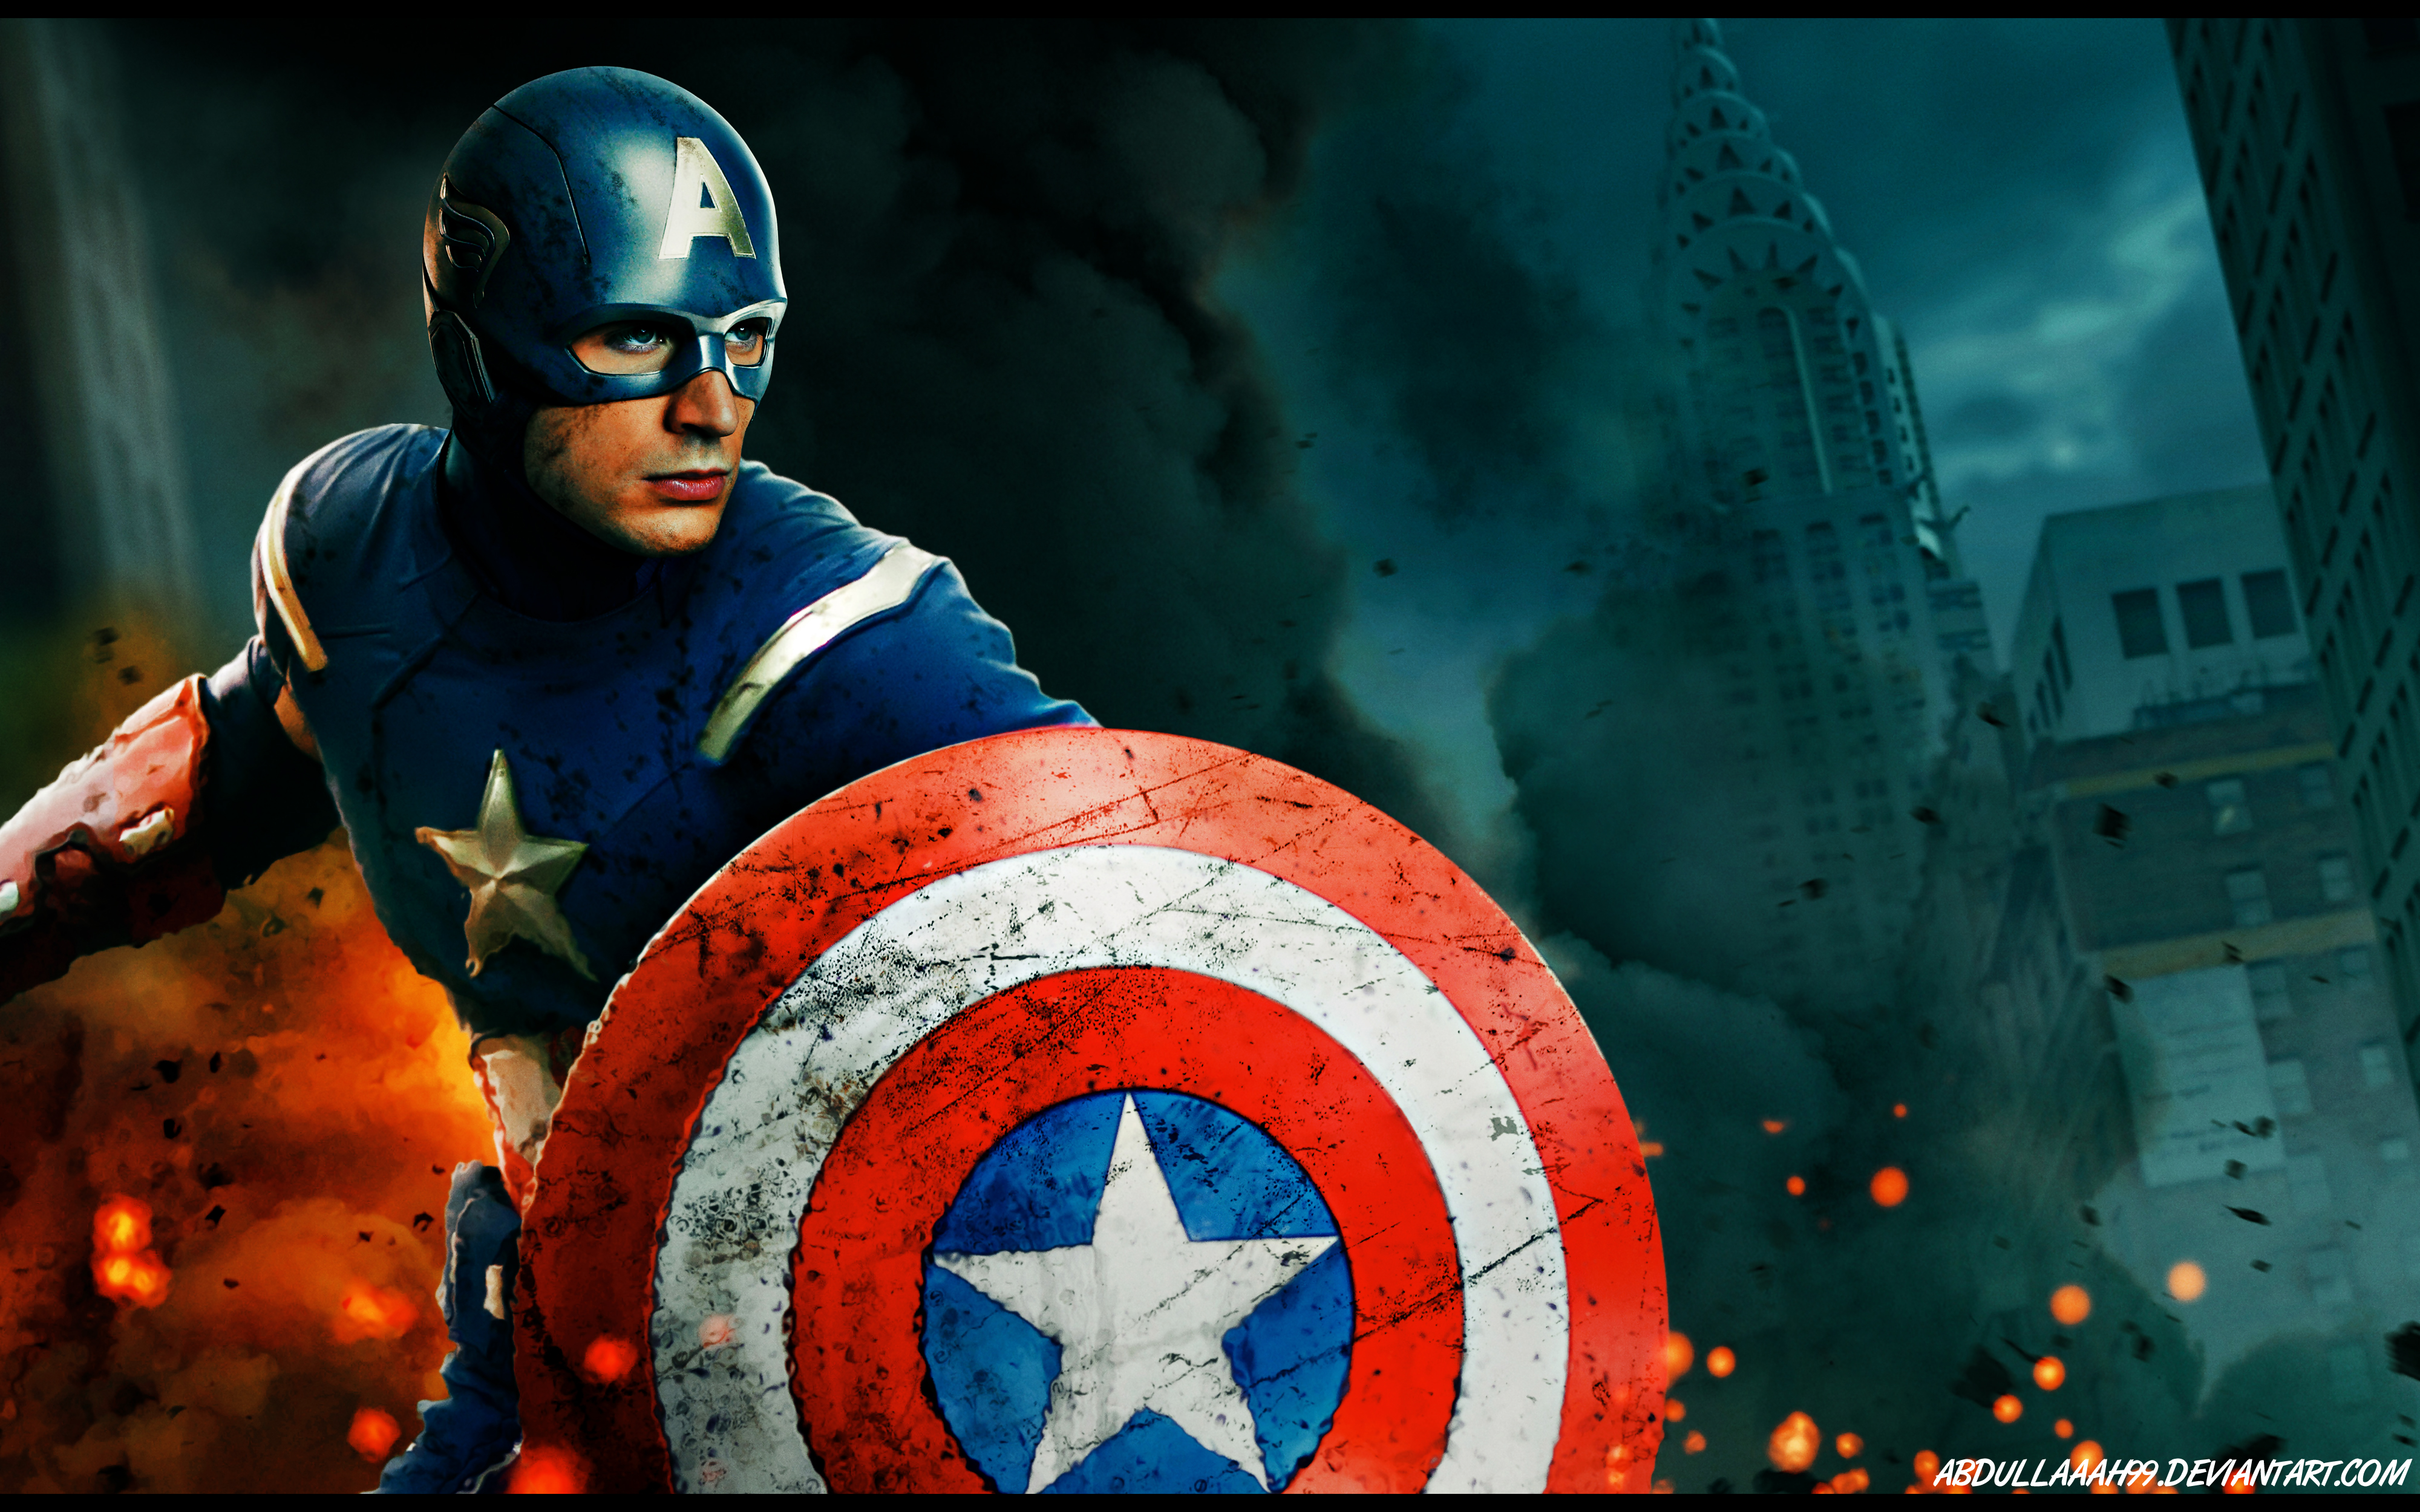 Captain america hd wallpapers - Captain america hd images download ...